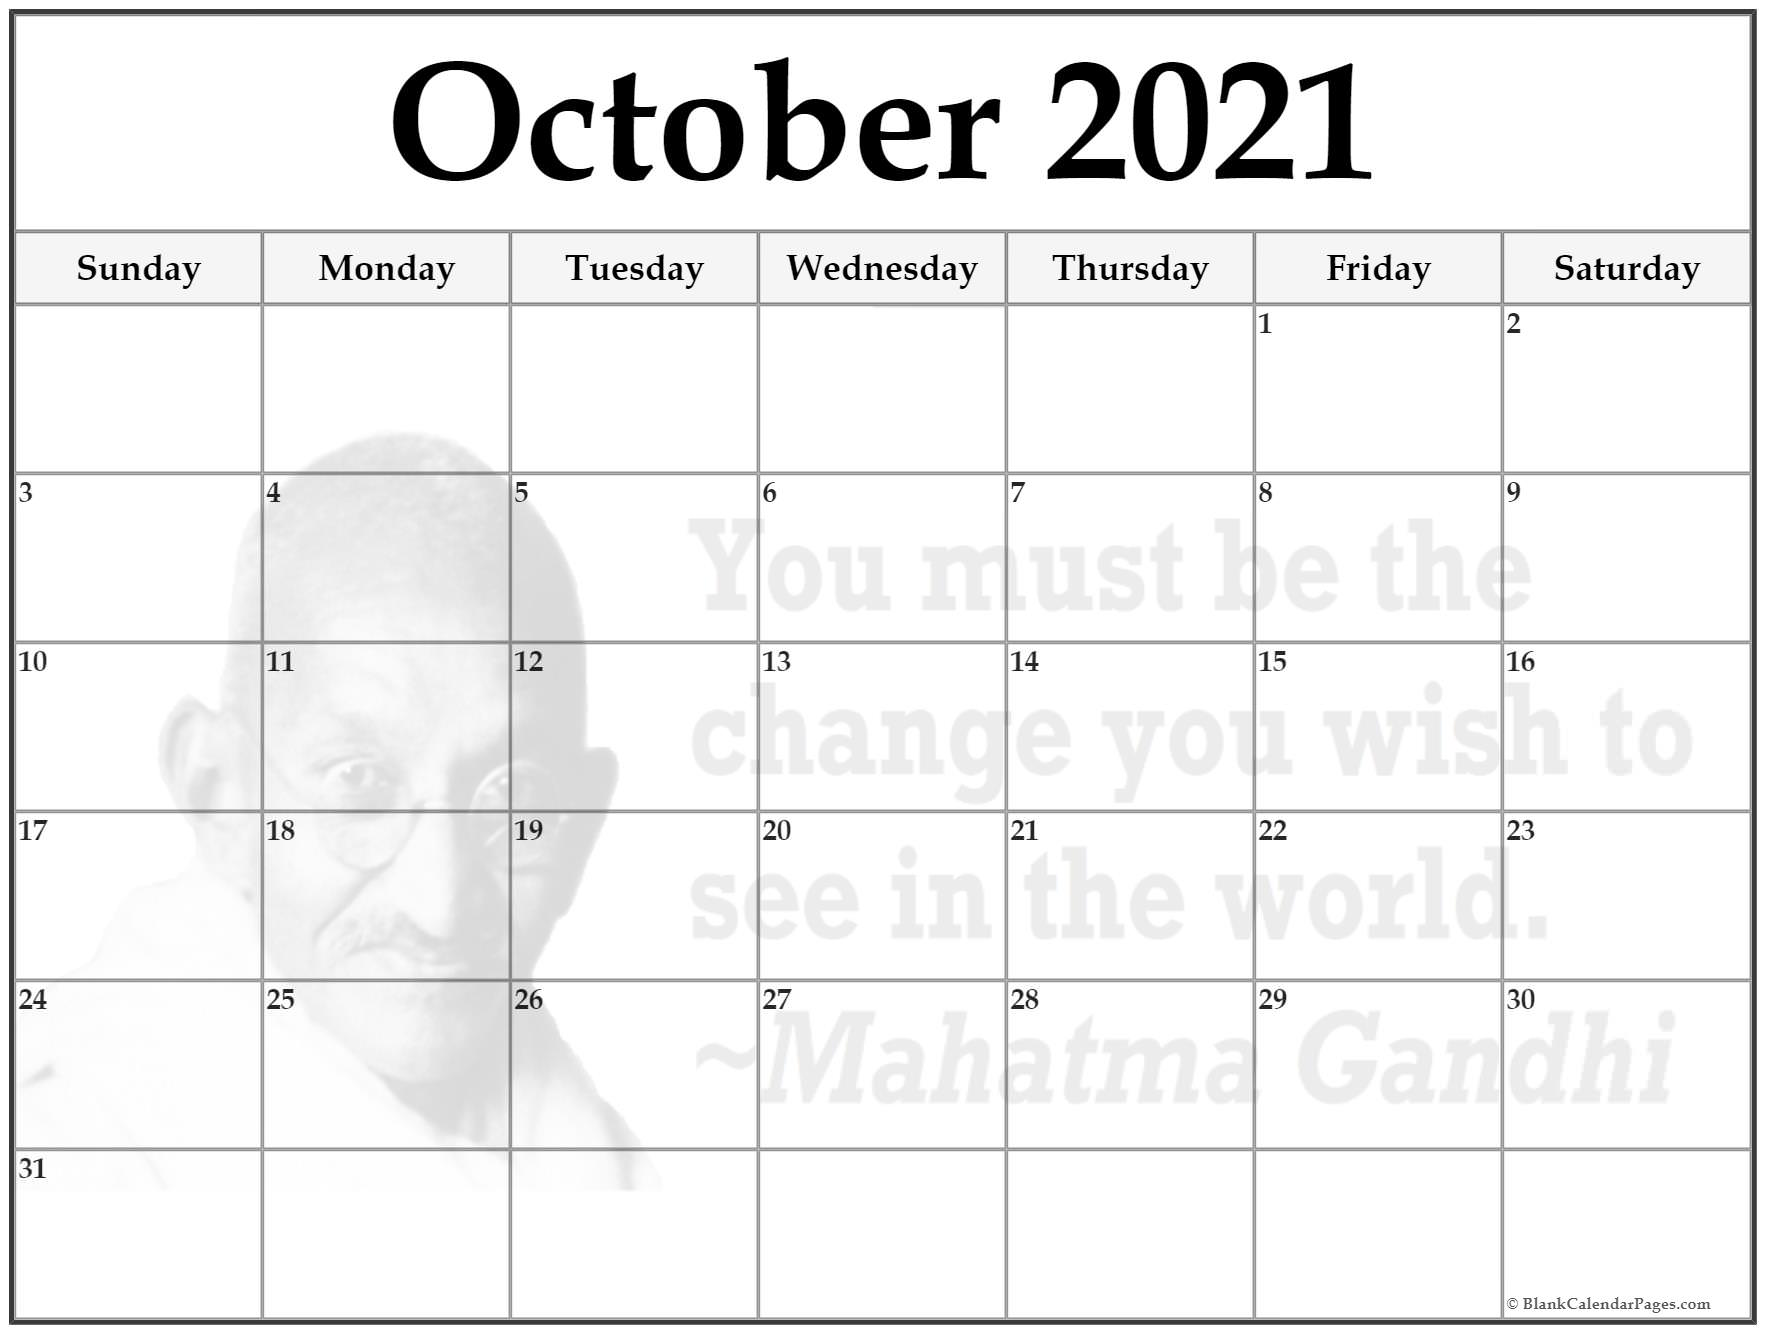 October 2020 gandhi calendar. You must be the change you wish to see in the world. ~Mahatma Gandhi